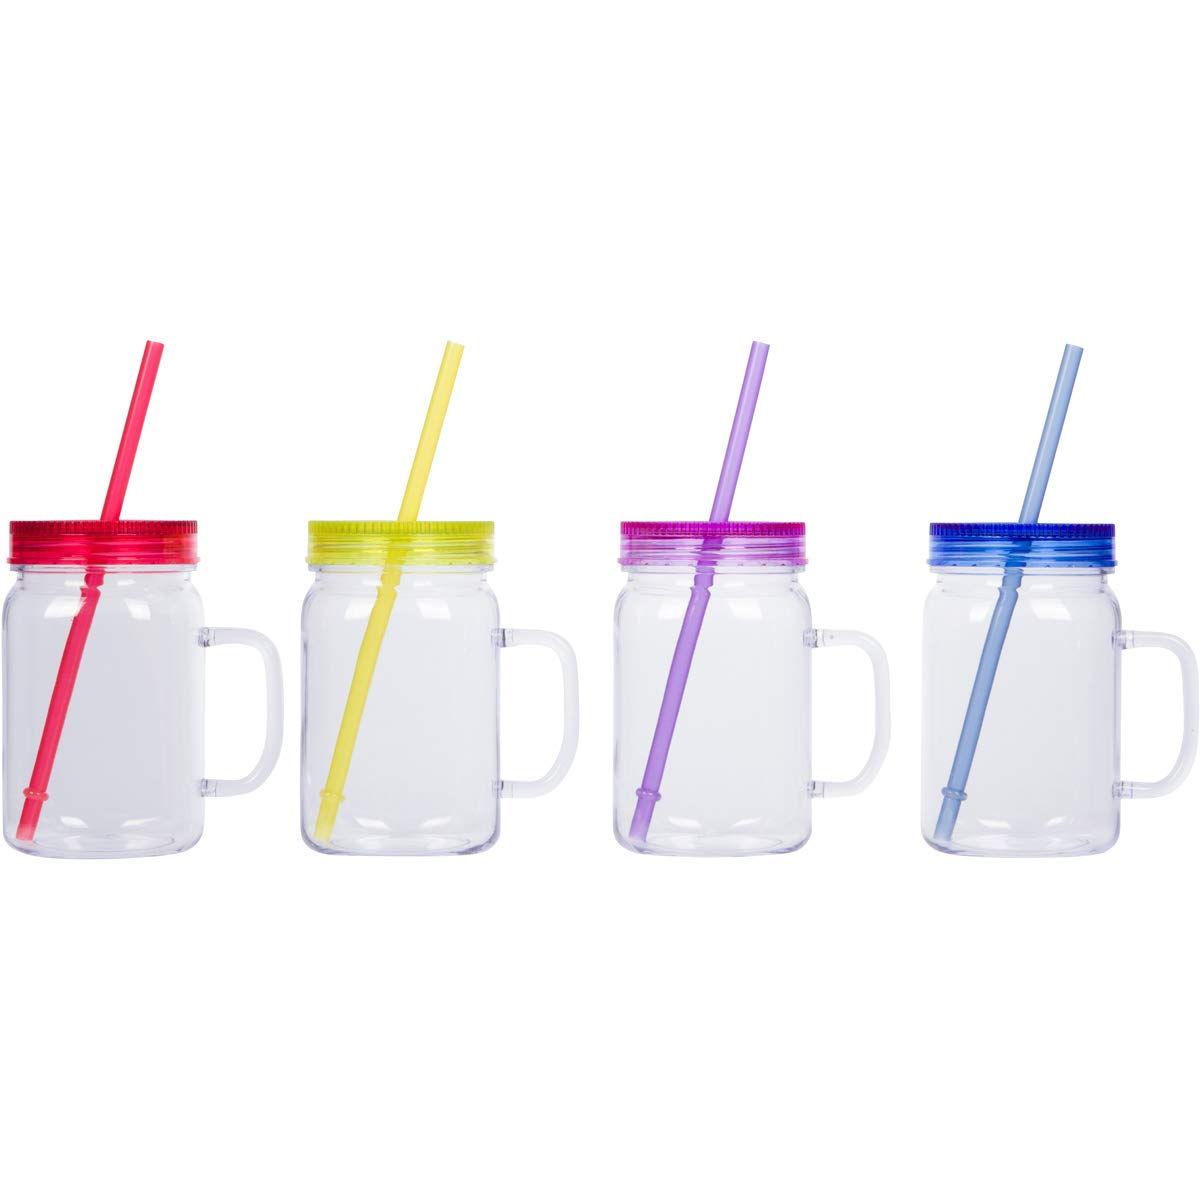 Zephyr Goods Plastic Mason Jars with Handles, Lids and Straws   12 oz Plastic Tumblers with Straw   Set of 4   Drinking Mason Jar Mugs   Great Cups for Kids , Adults and Grandparents